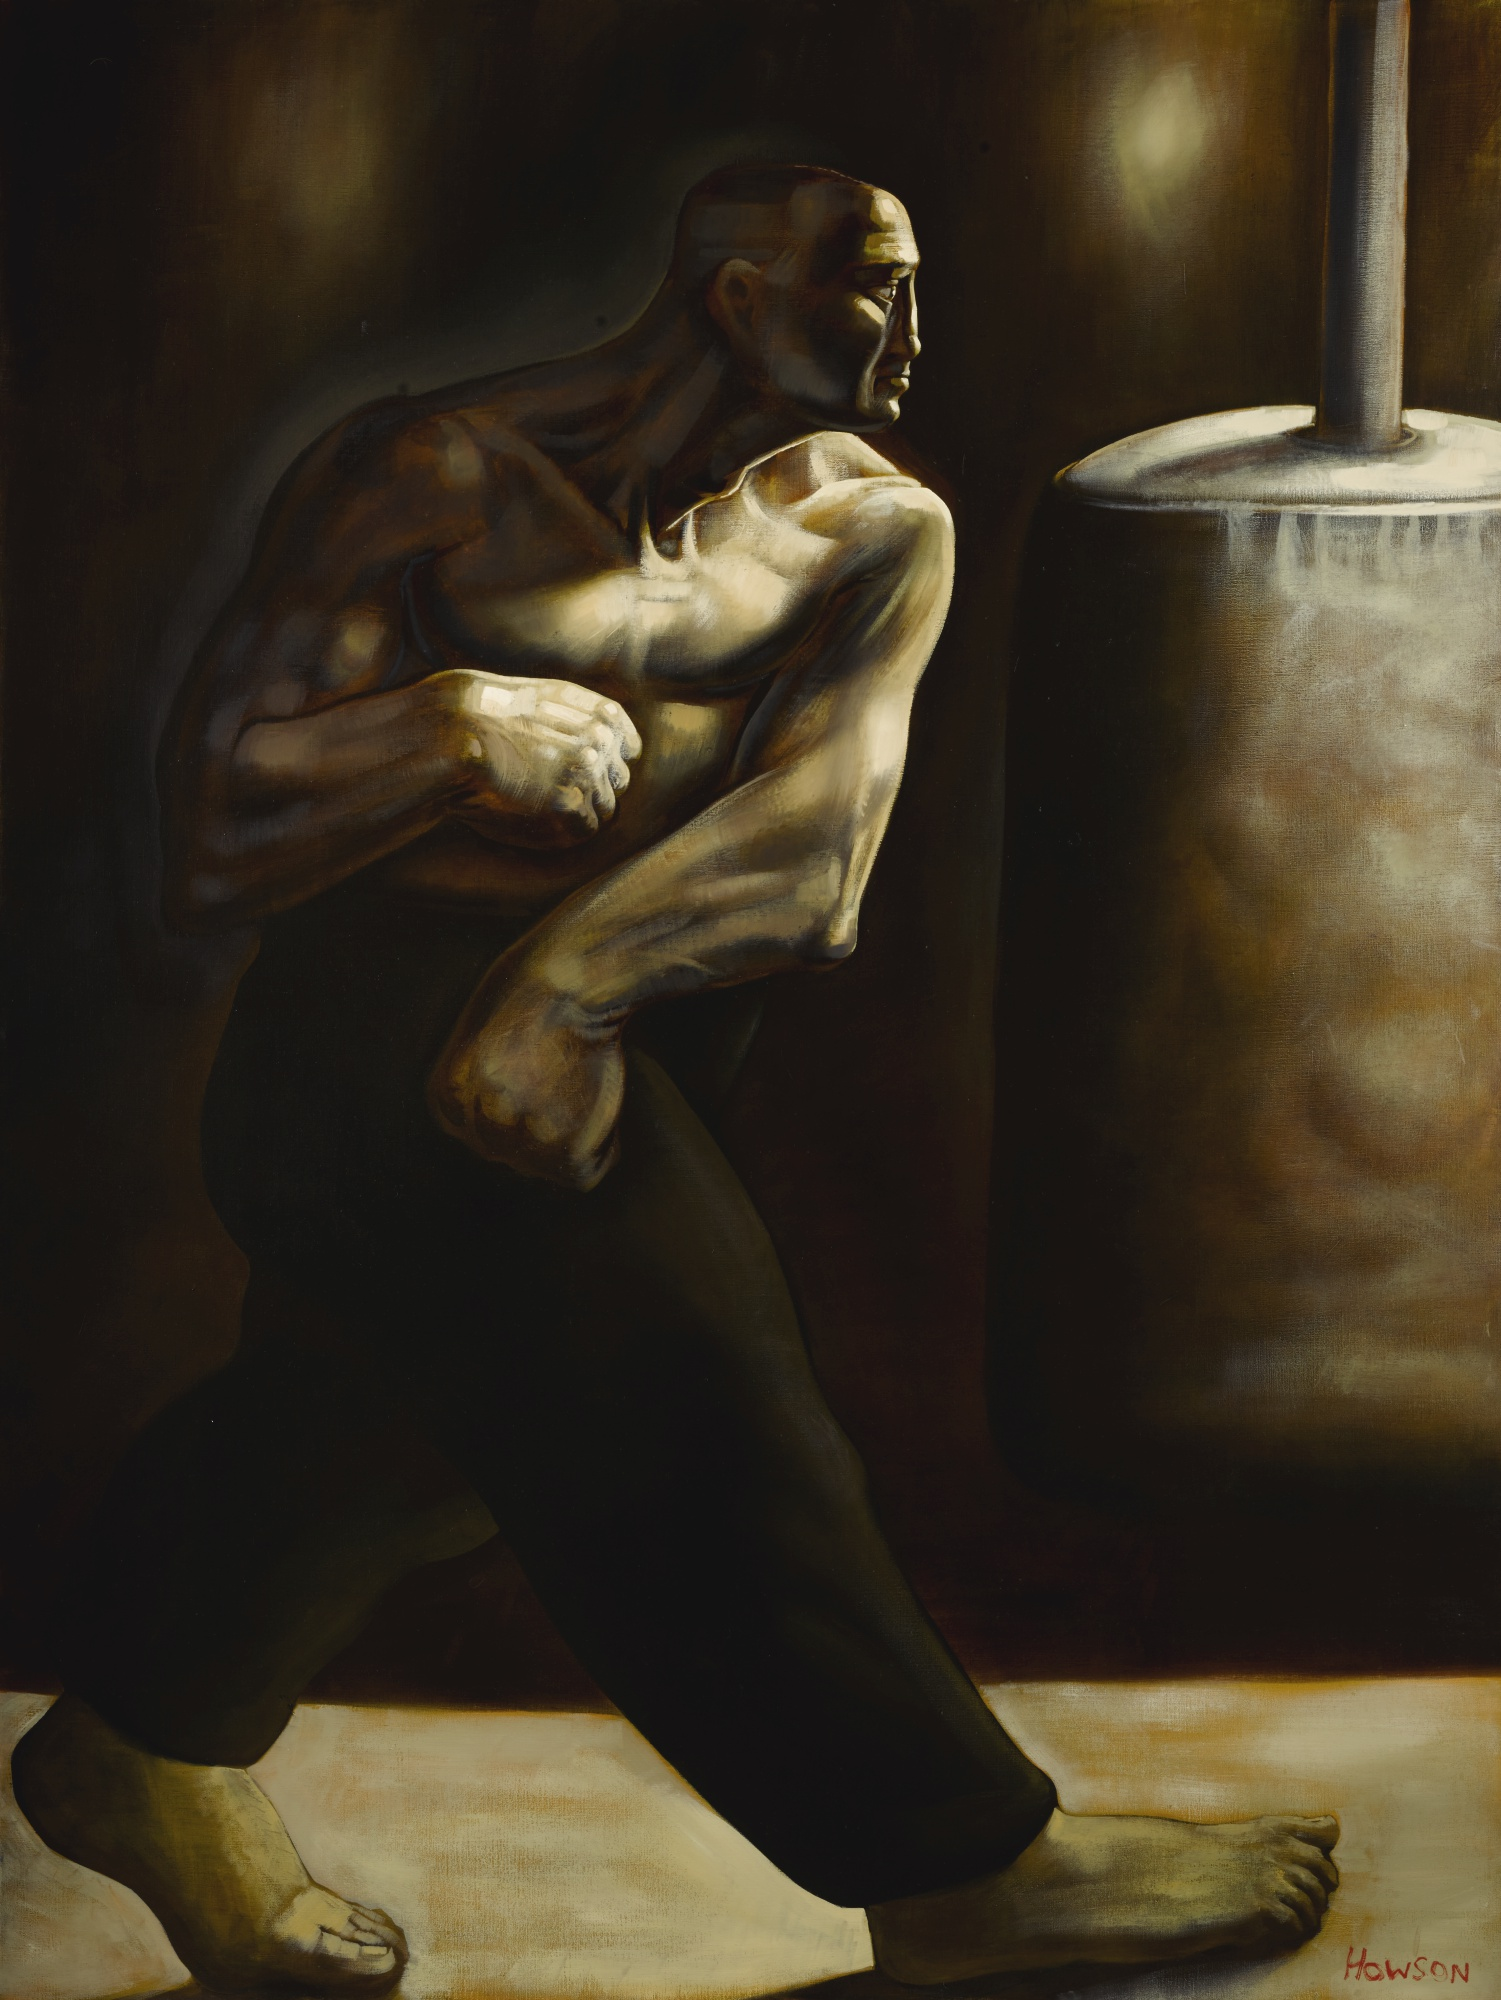 Peter Howson-Someone Up There Liked Me-1989